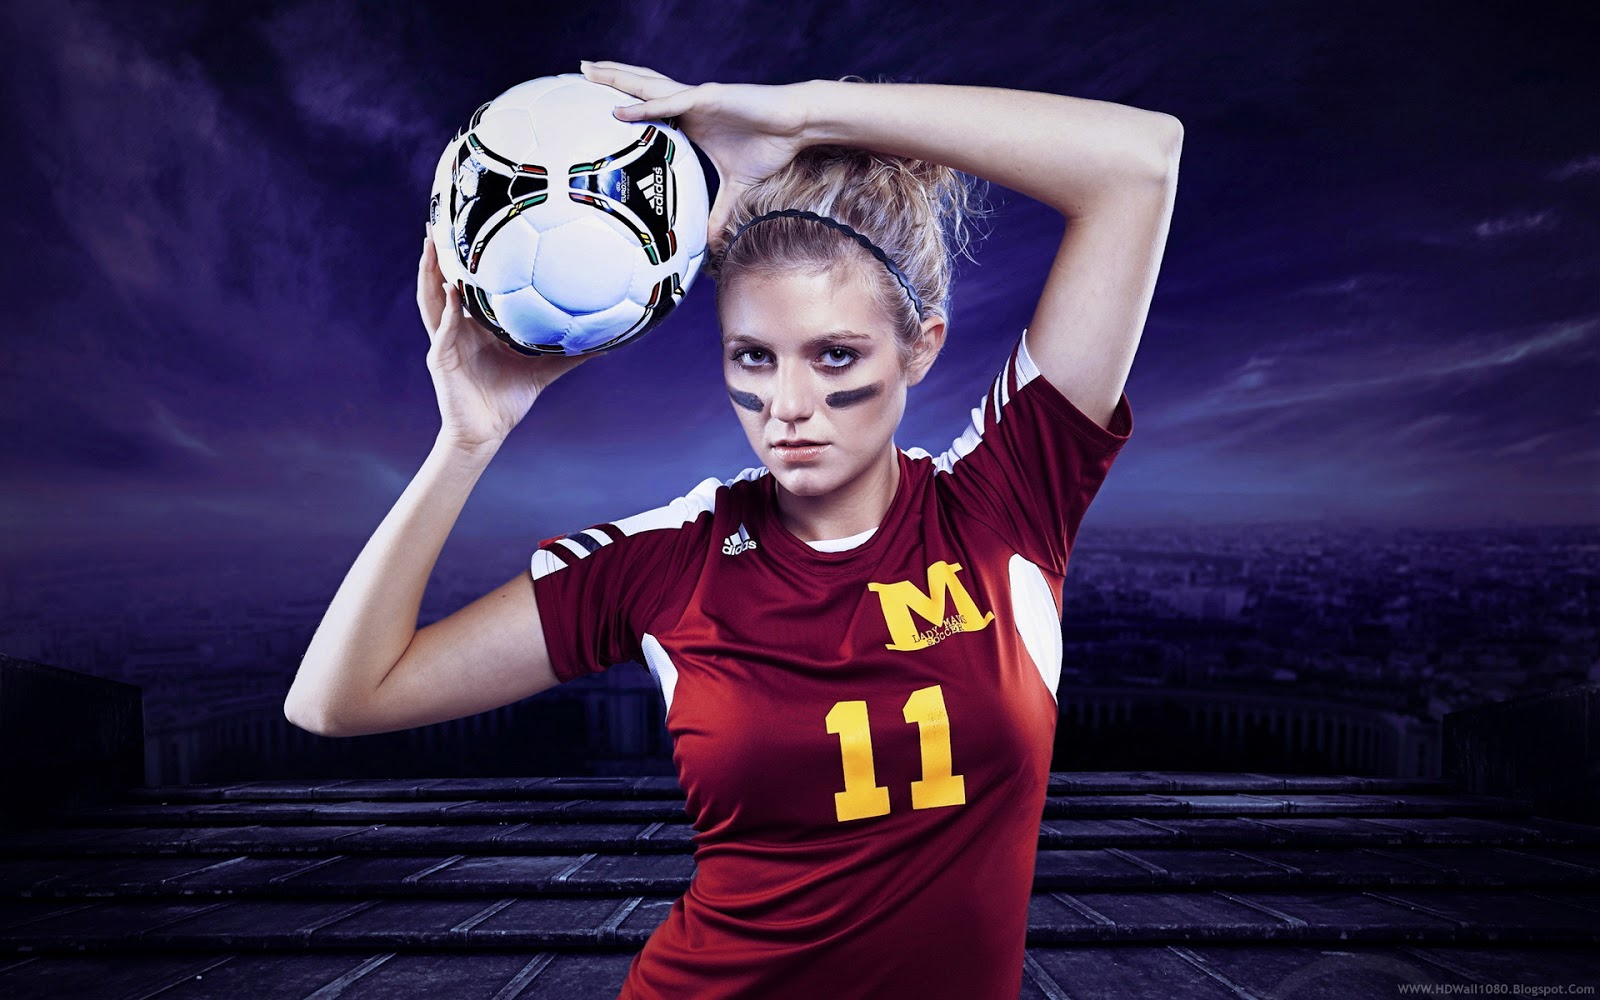 Sports Girls Wallpaper: Football Wallpapers Women - HD Desktop Wallpapers